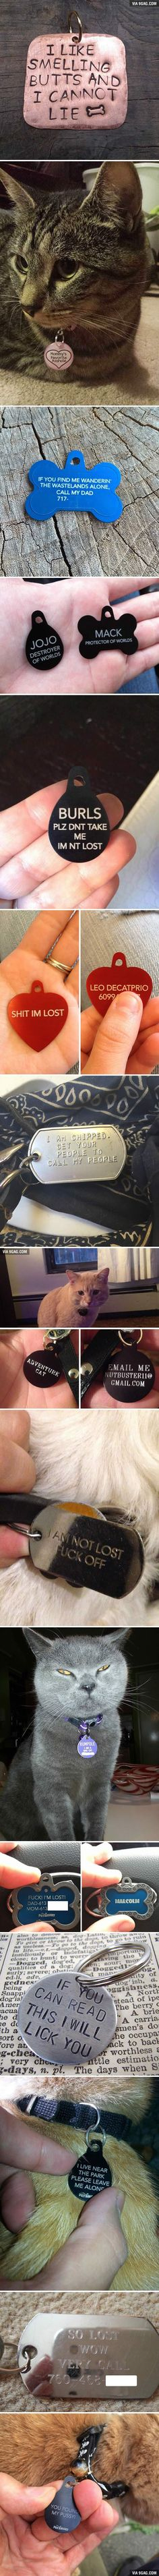 Hilarious Collar Tags For Pets Who Tend To Get Lost